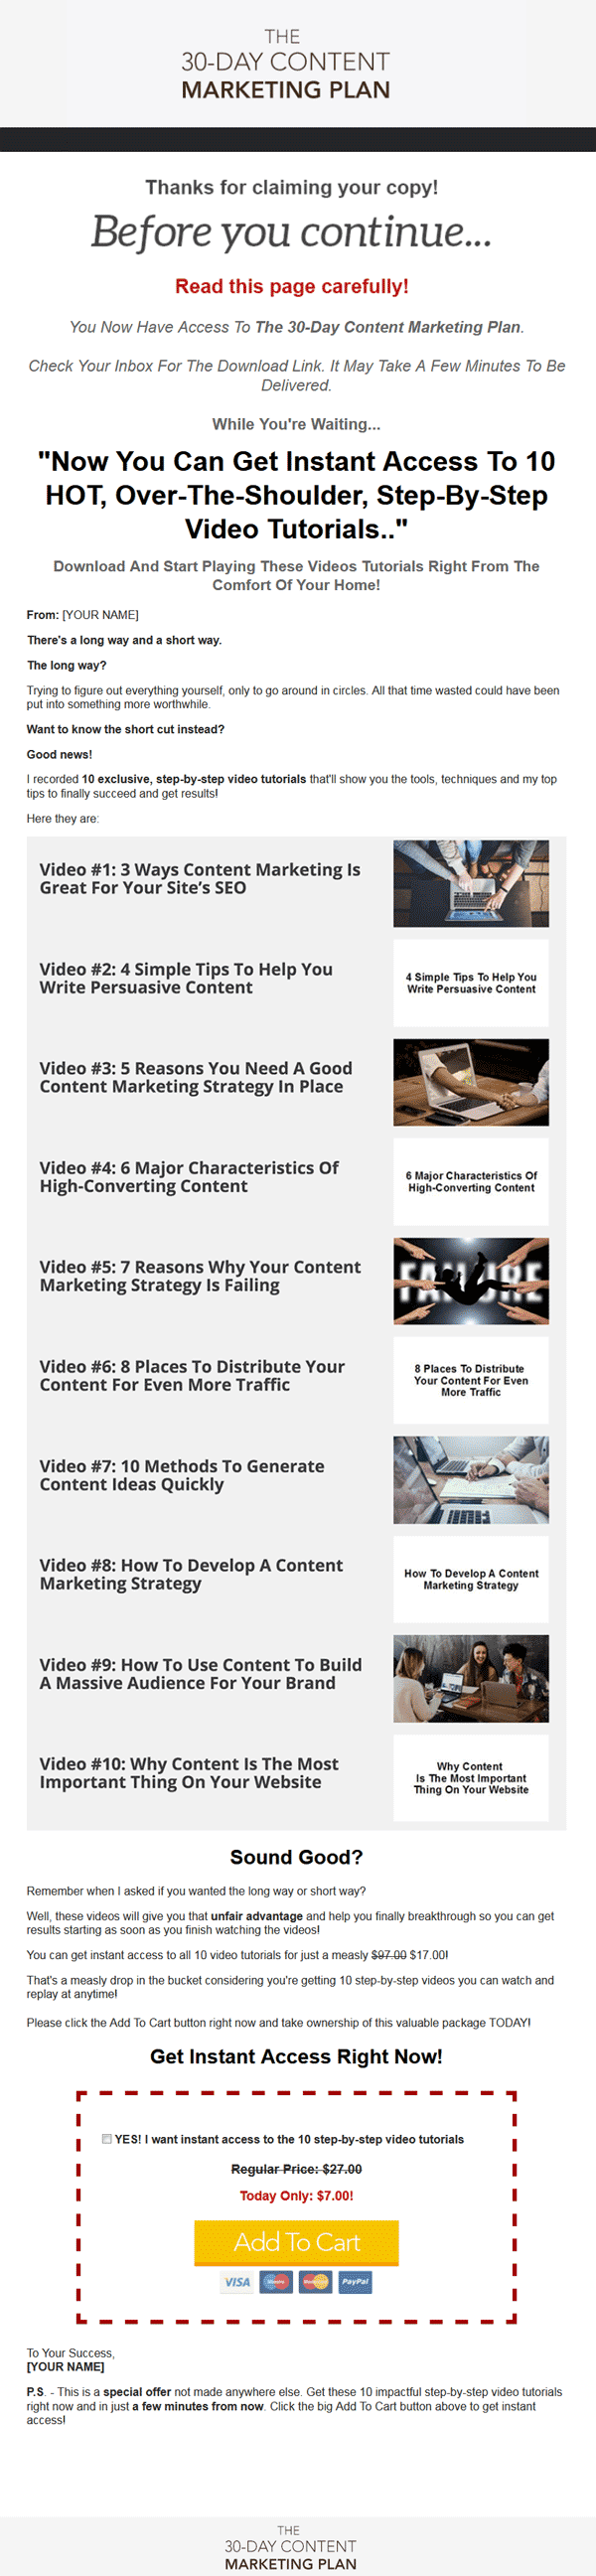 30 Day Content Marketing Plan Ebook and Videos MRR